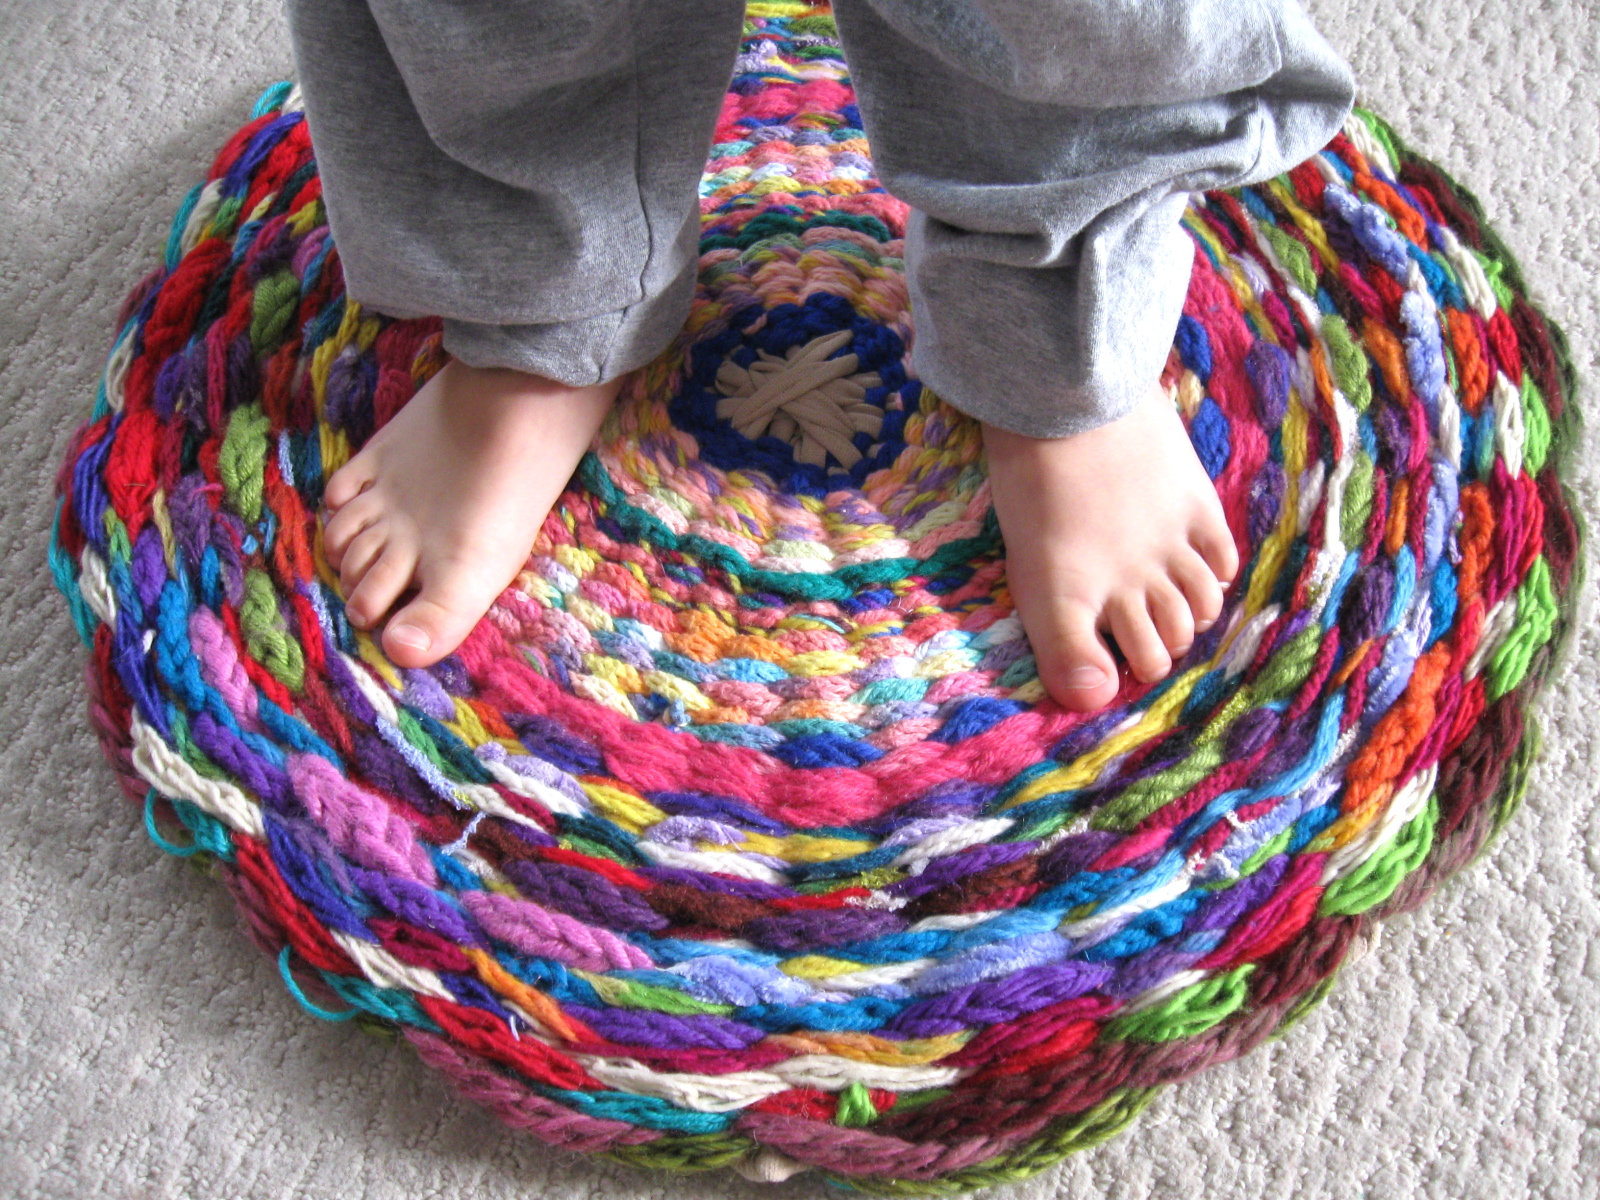 Woven Rug Or What To Do With All That Finger Knitting